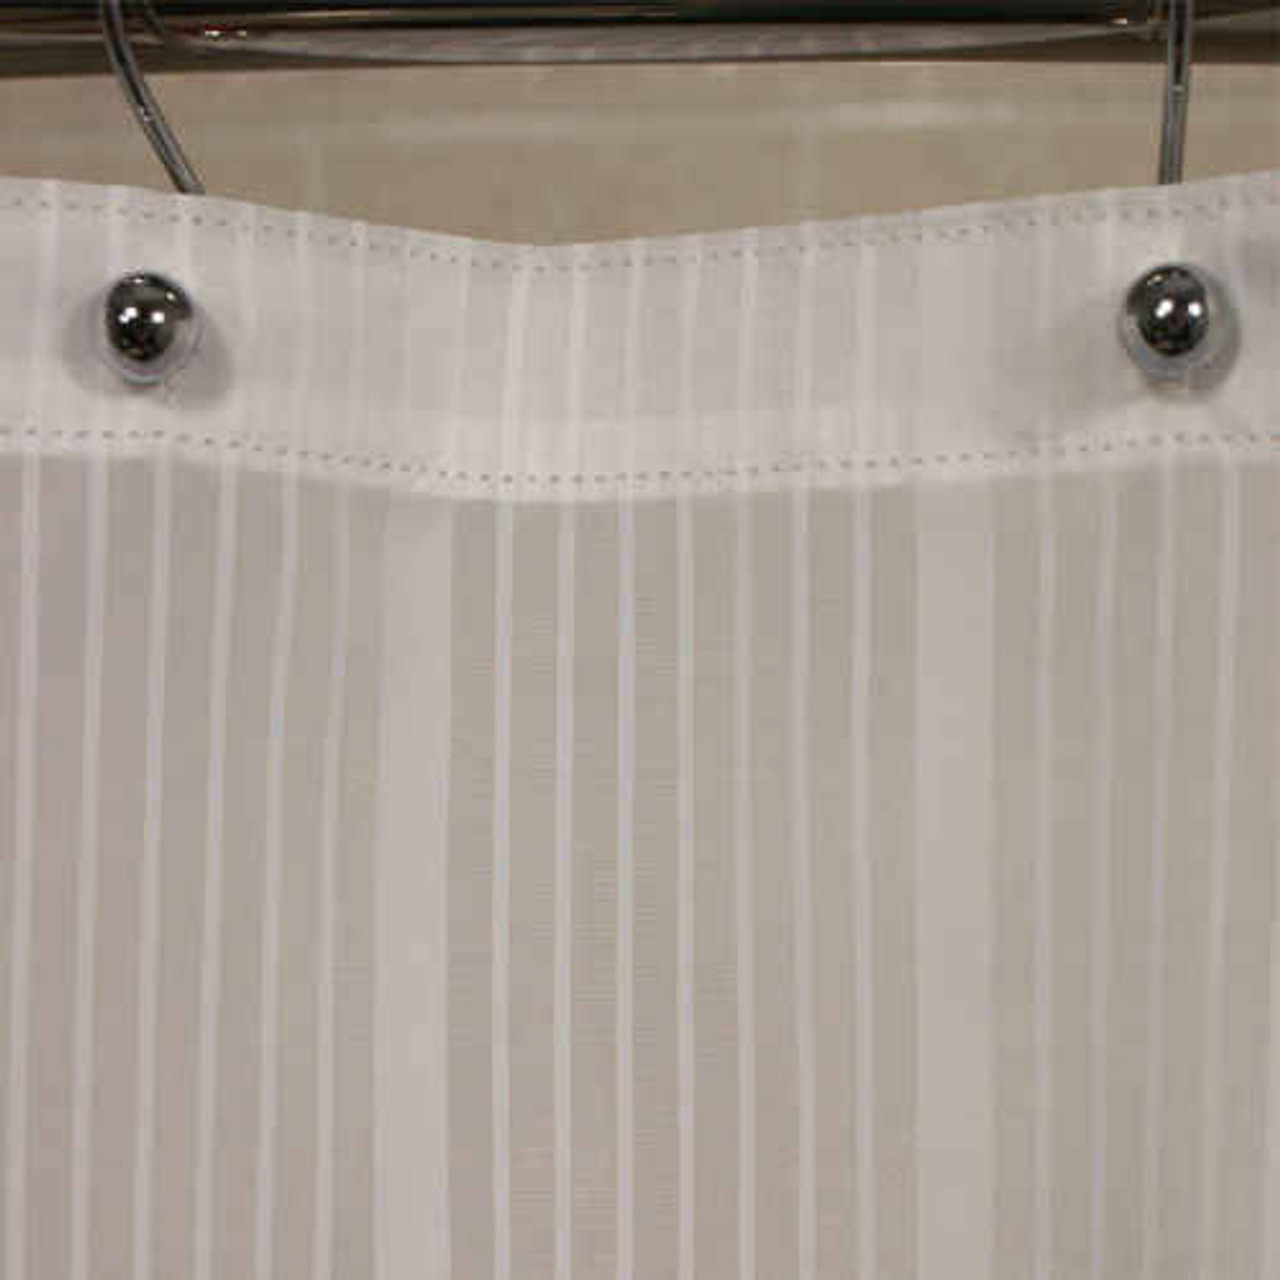 Kartri KARTRIor SUPER STRIPEor NYLON SHOWER CURTAIN W/ SEWN EYELETS PACK OF 12